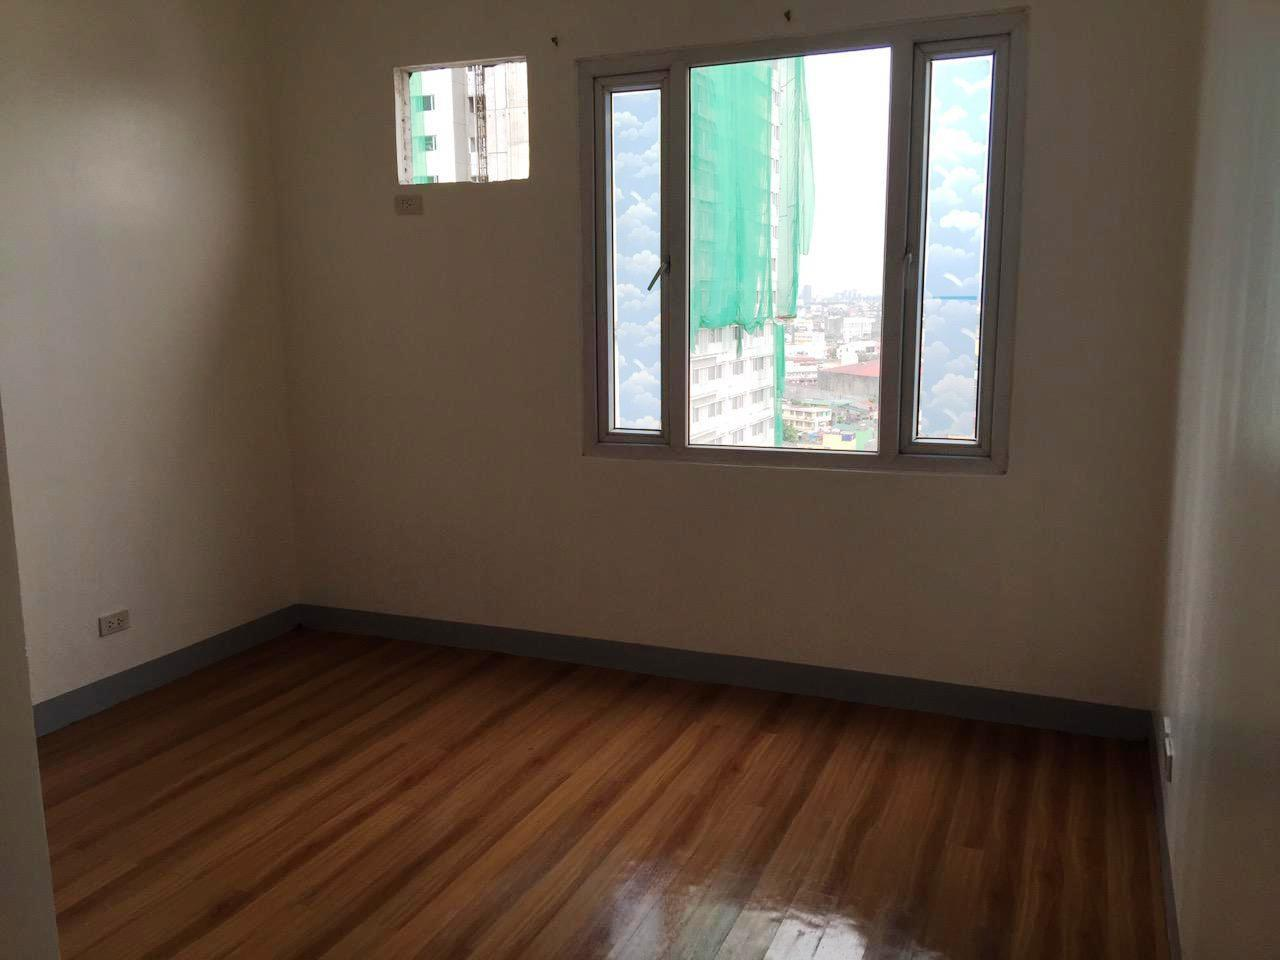 30.76 sqm, Un-Furnished 1BR Unit for Rent <br>